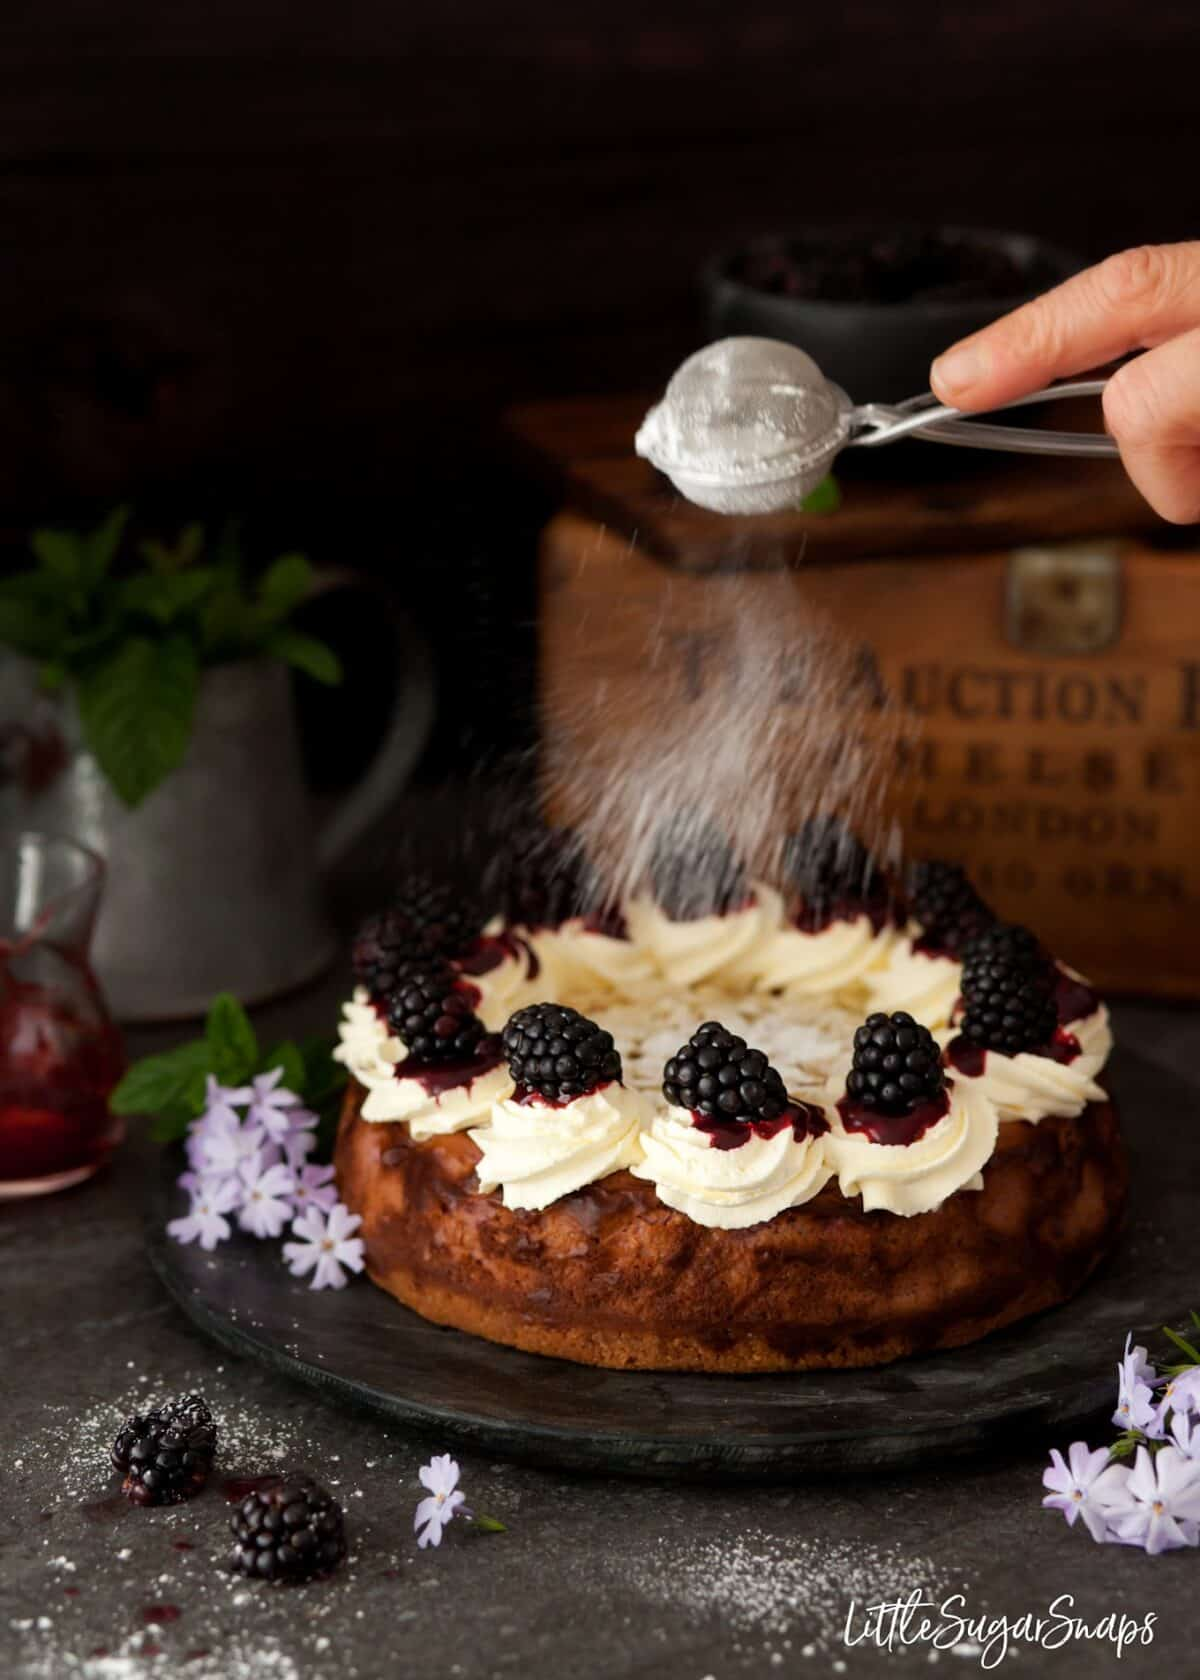 Dusting a baked blackberry cheesecake with icing sugar